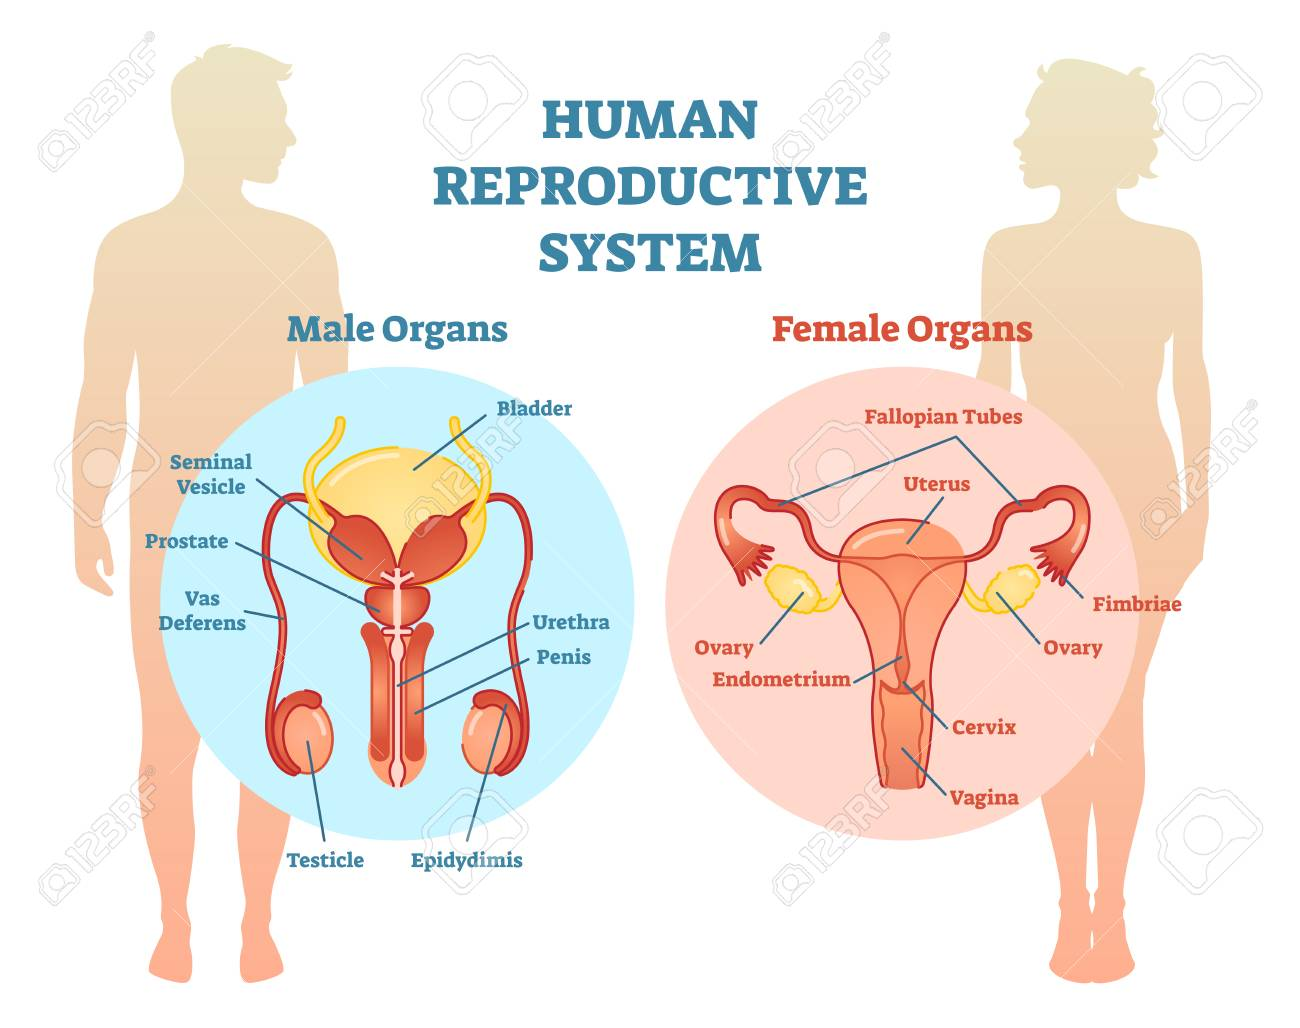 hight resolution of human reproductive system vector illustration diagram male and female medicine educational information stock